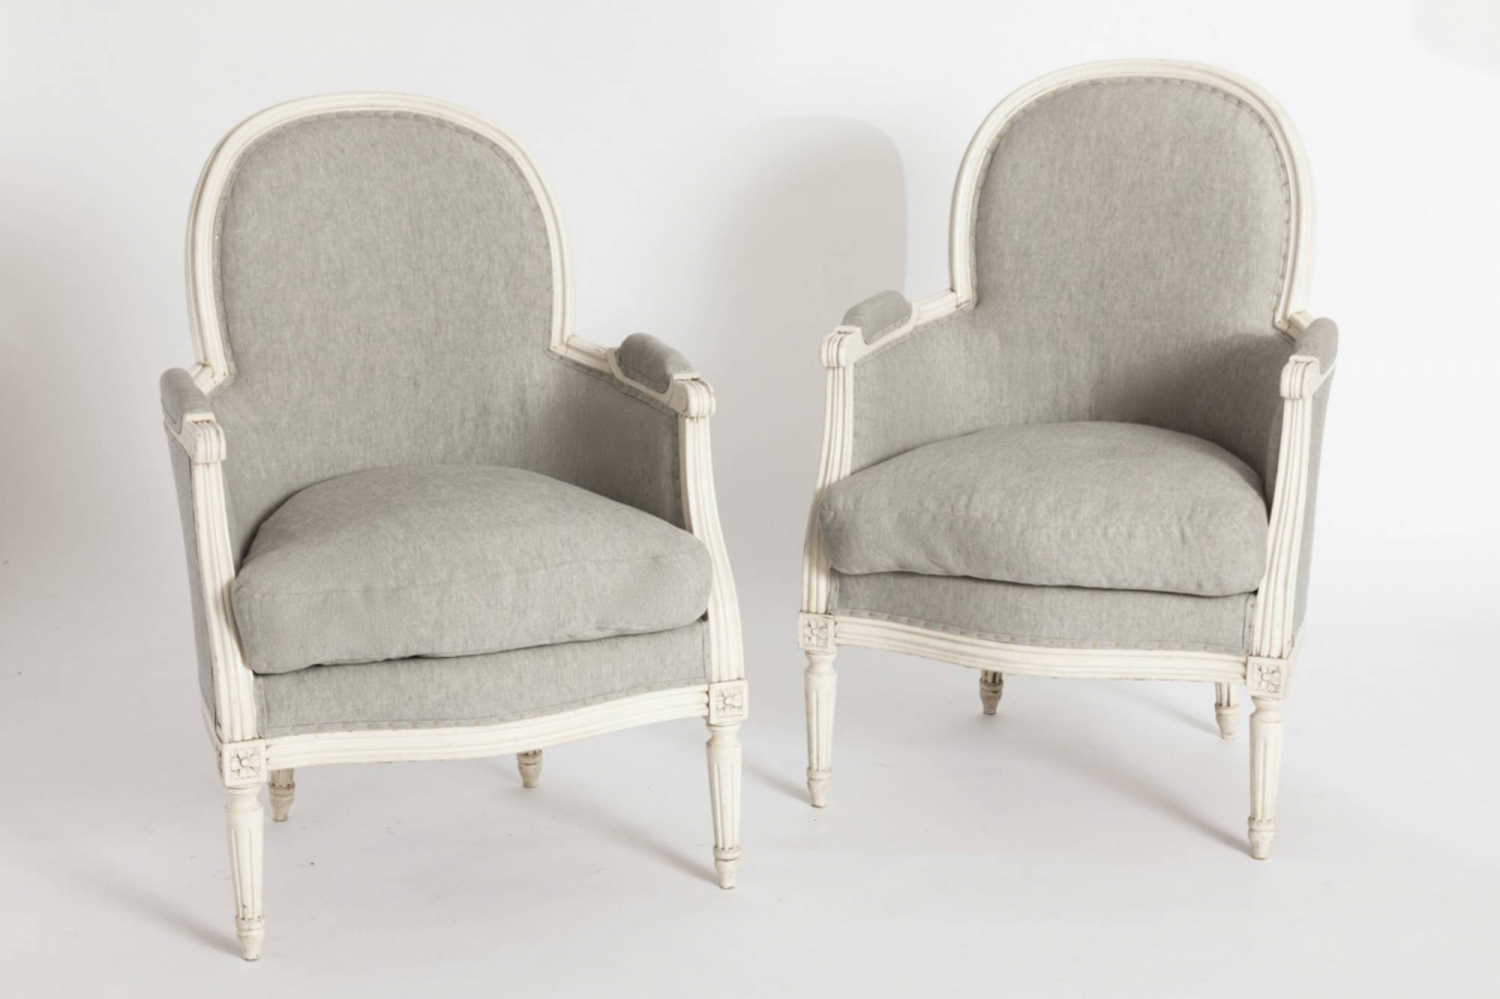 Pair of Salon Chairs